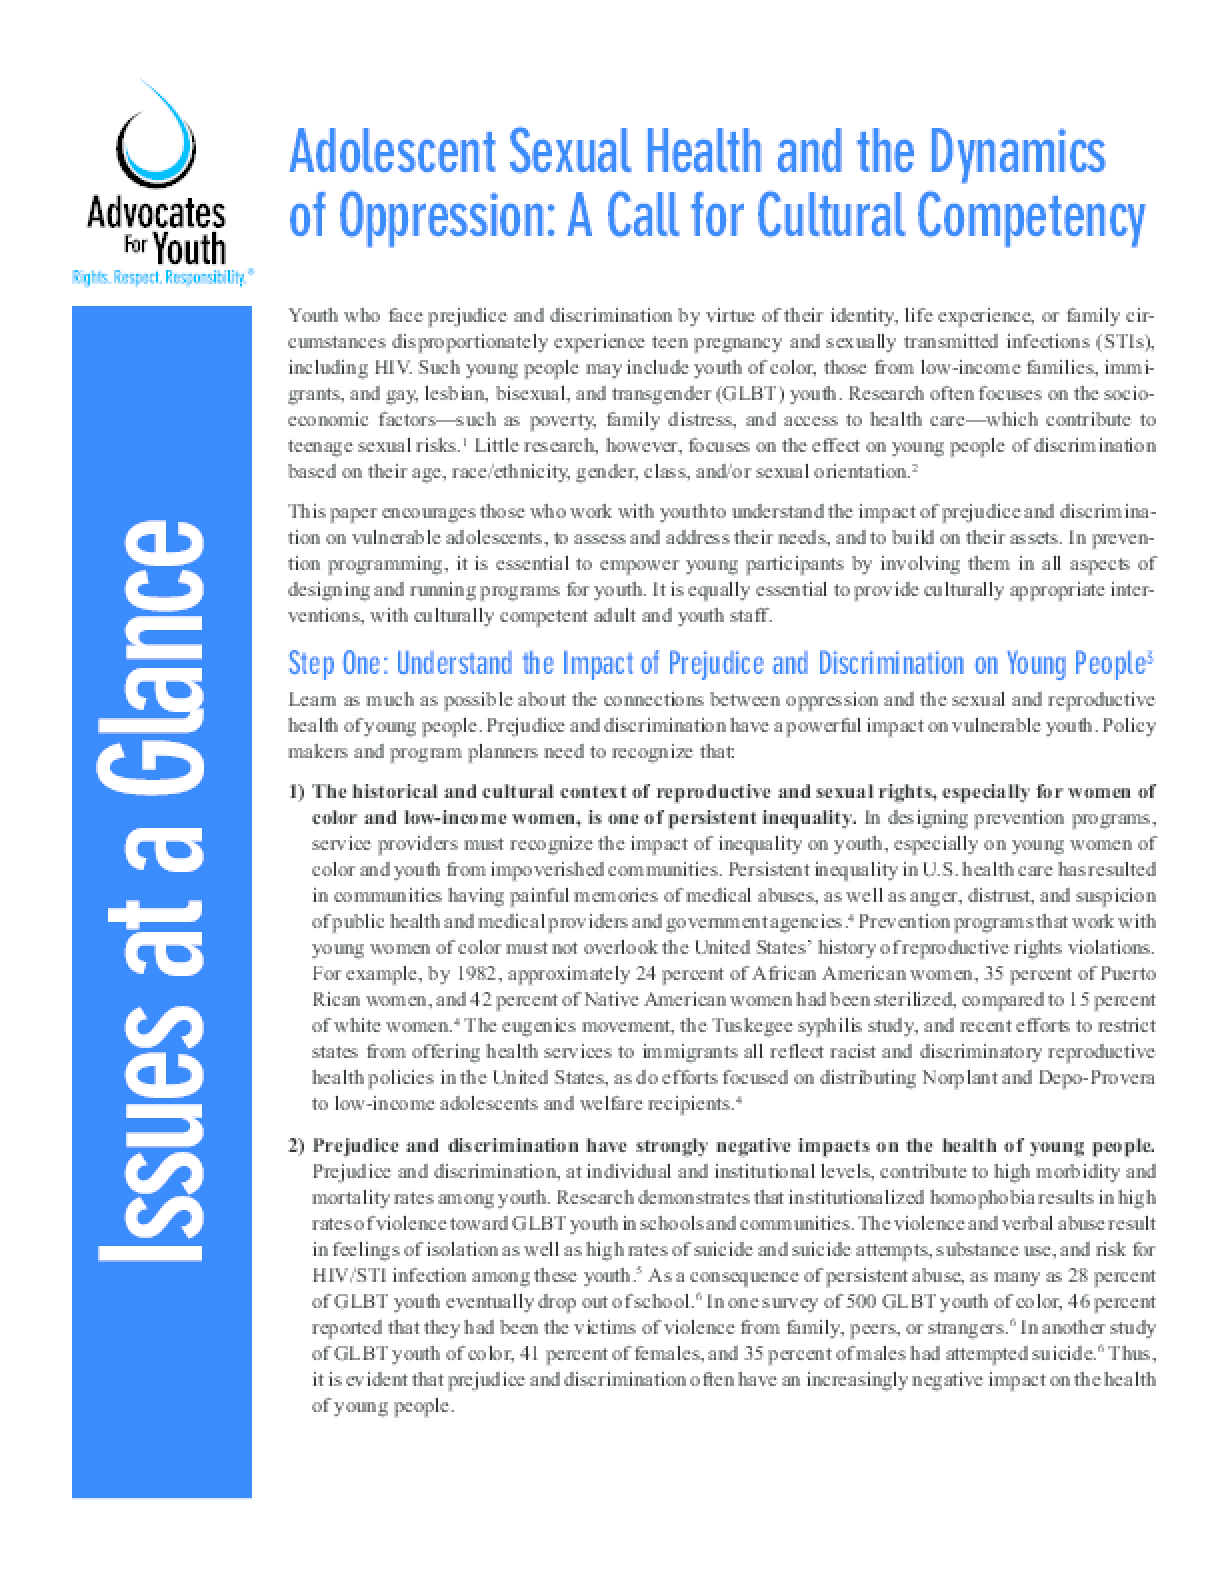 Adolescent Sexual Health and the Dynamics of Oppression: A Call for Cultural Competency